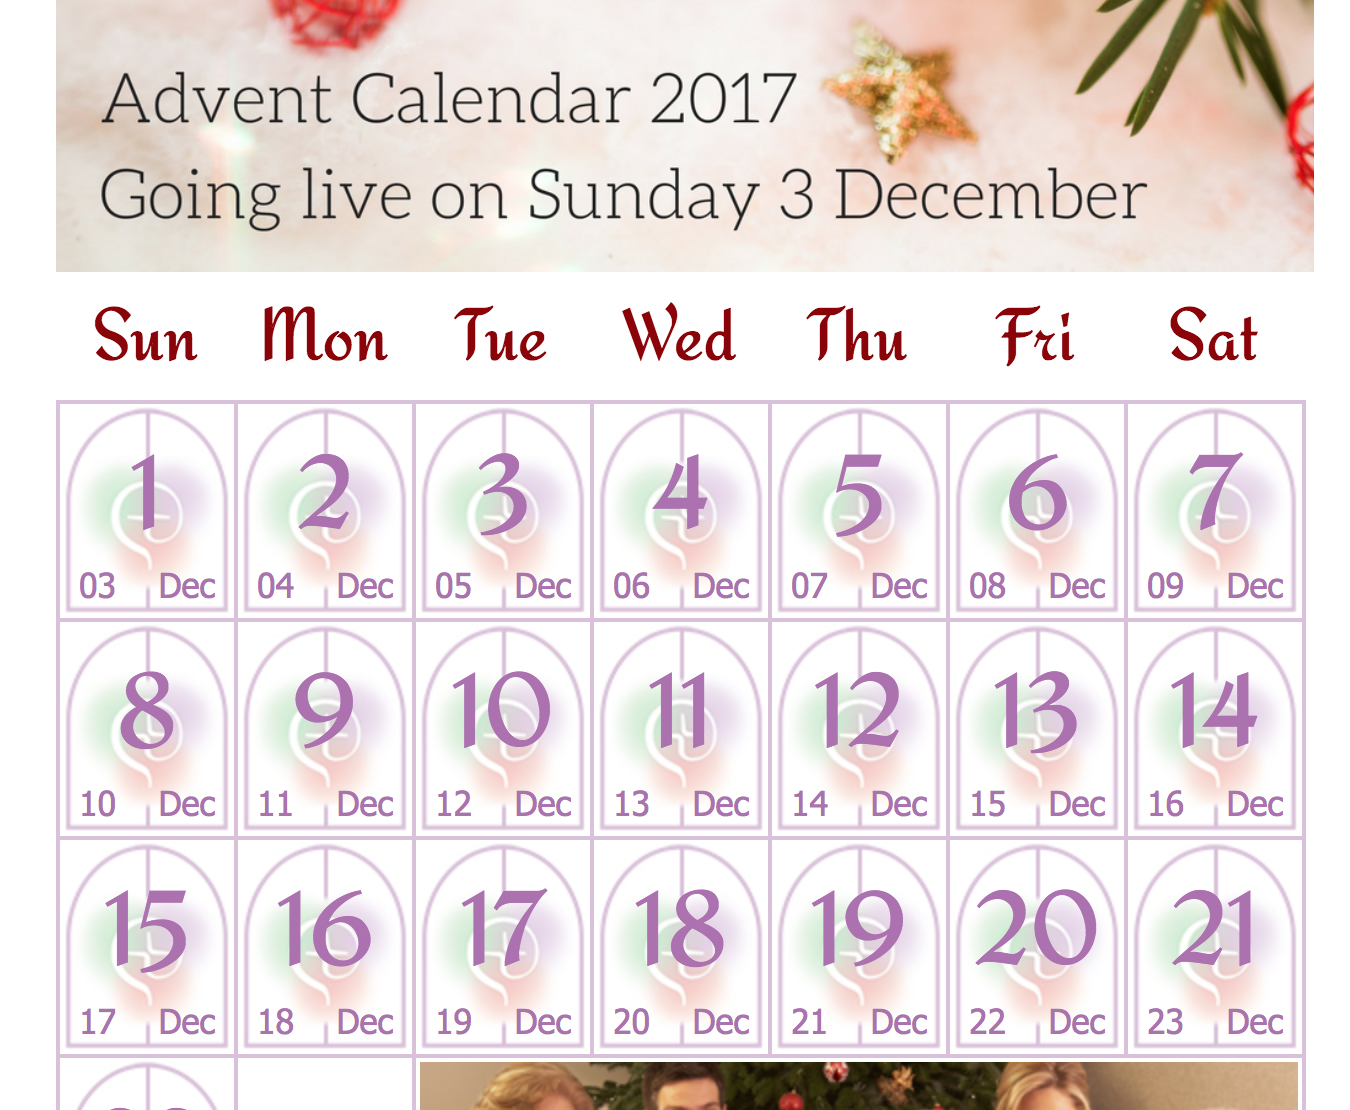 irish bishops conference launch online calendar for advent 2017